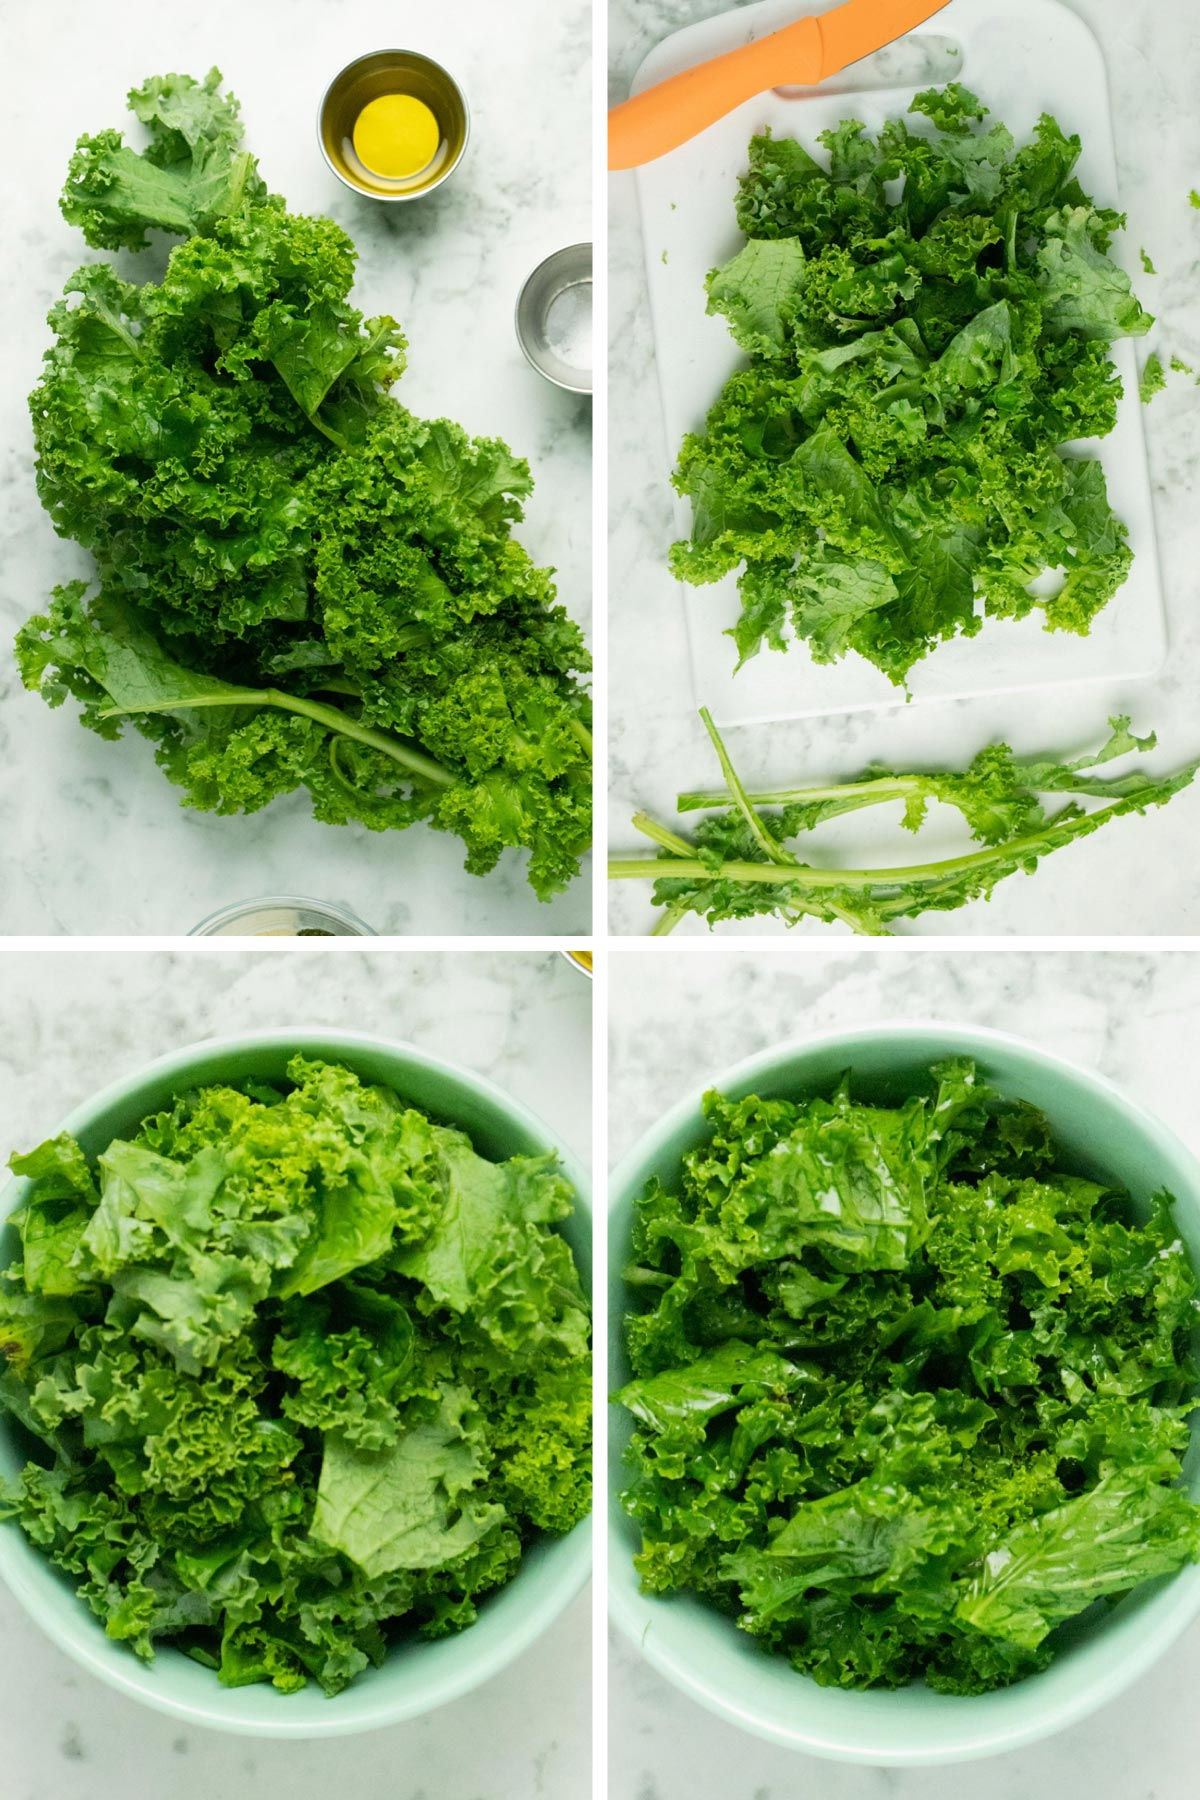 image collage of a bunch of kale, kale with stems removed, chopped kale in a bowl, and the same kale after massaging